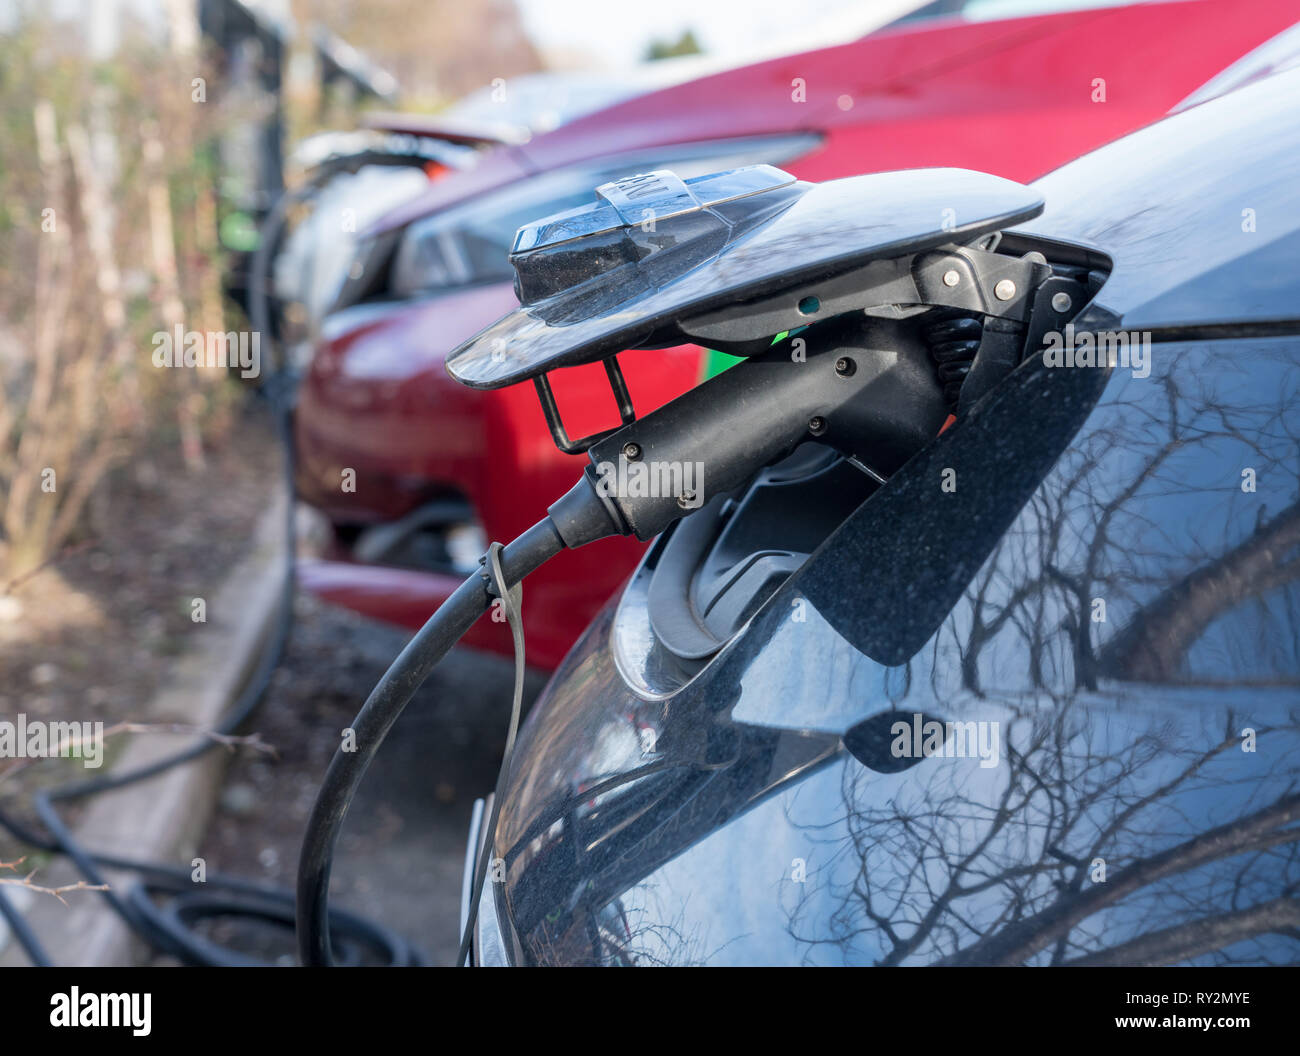 Nissan electric car being recharged in parking lot - Stock Image